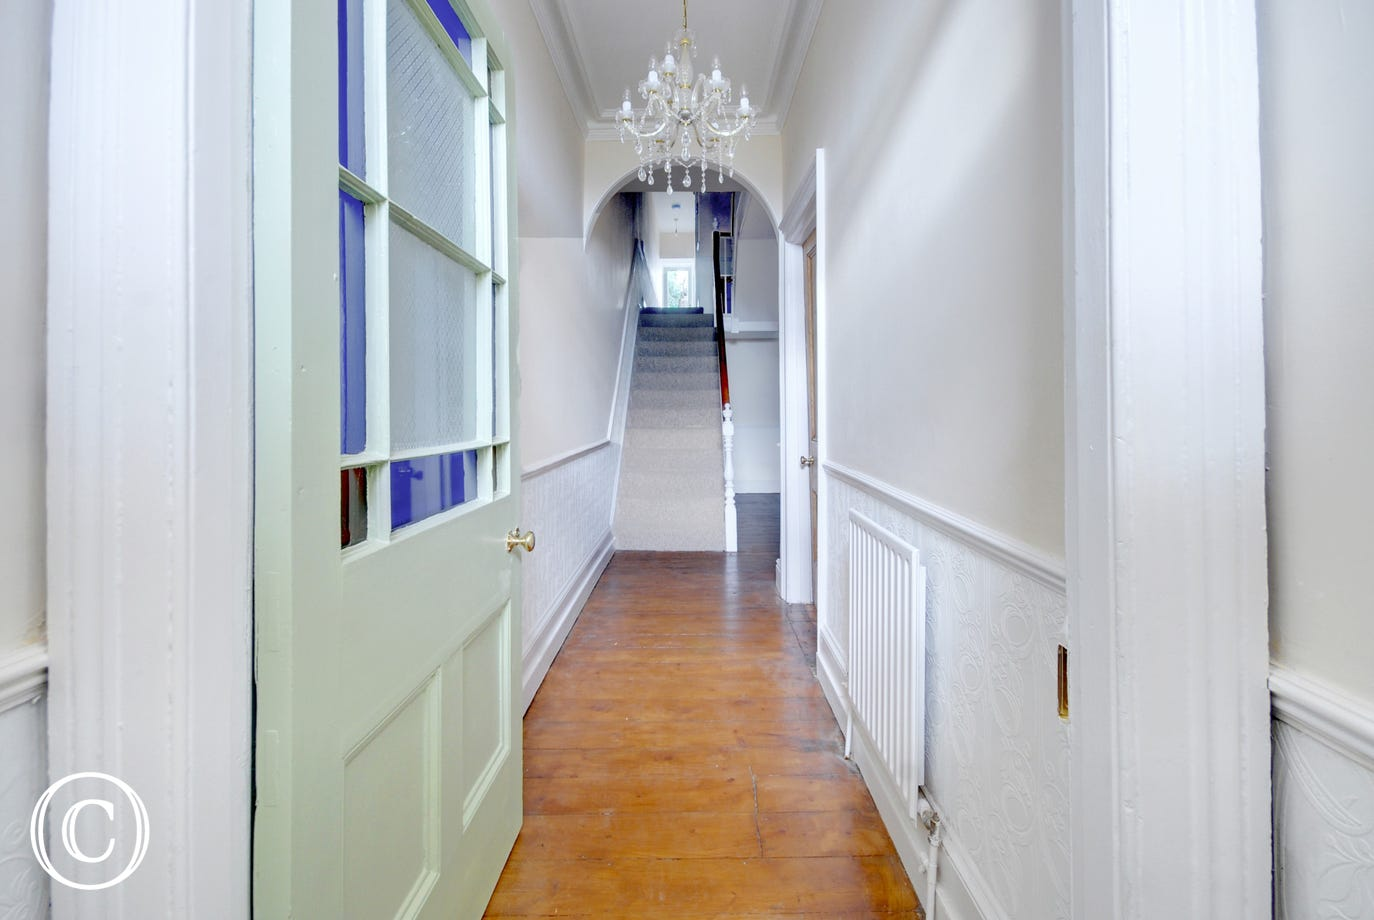 The grand entrance hallway